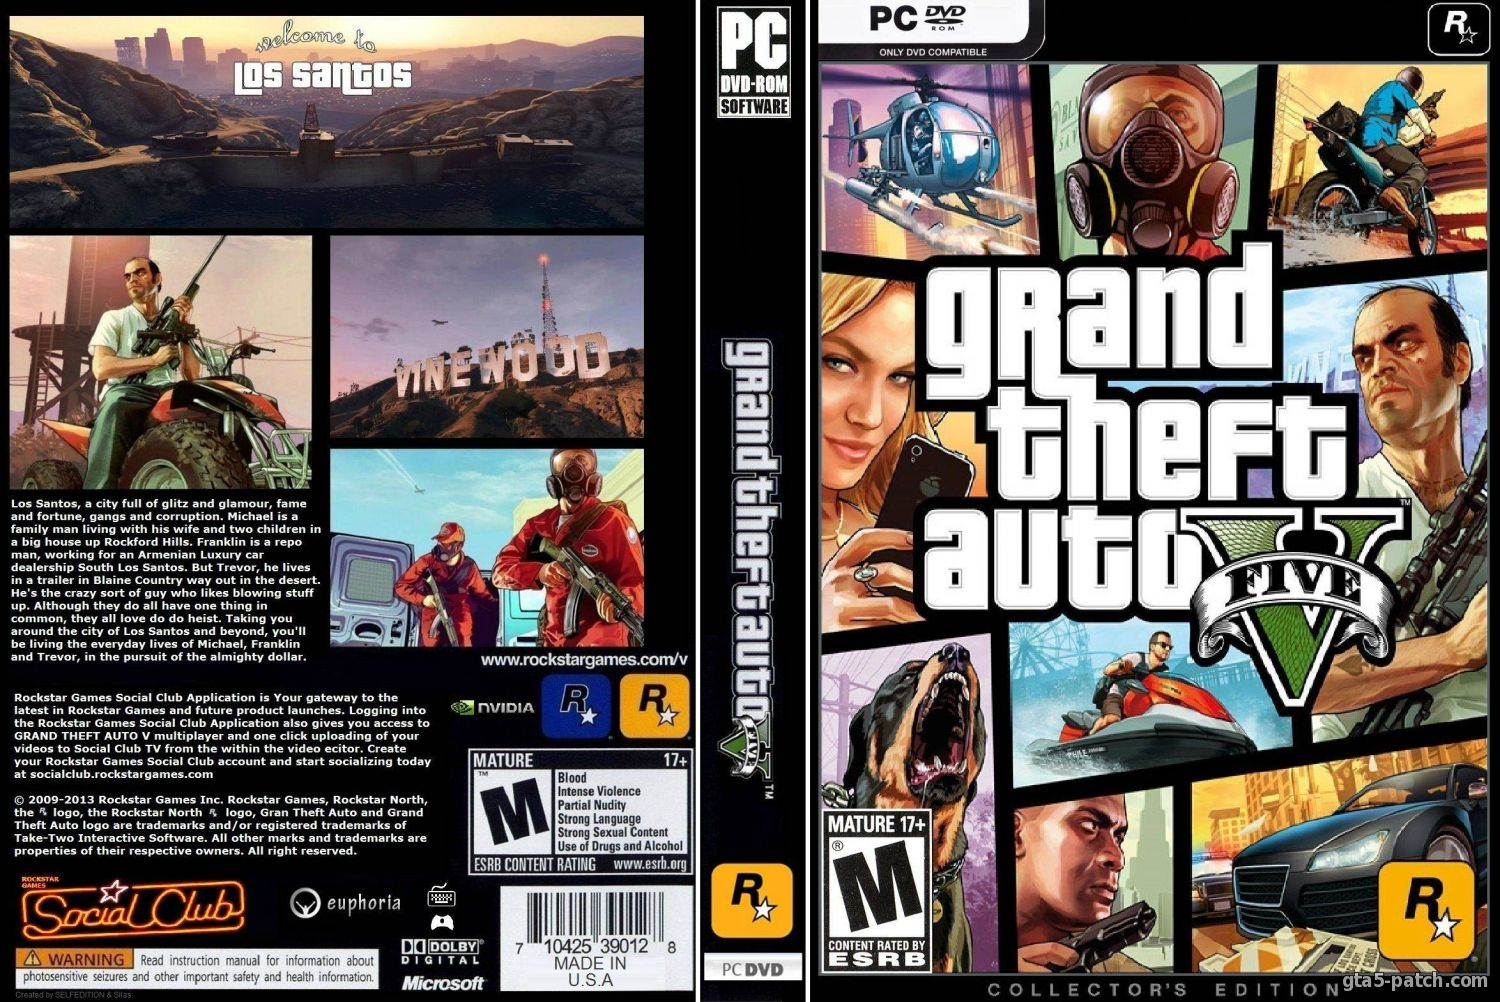 Gta 5 pc download home | facebook.